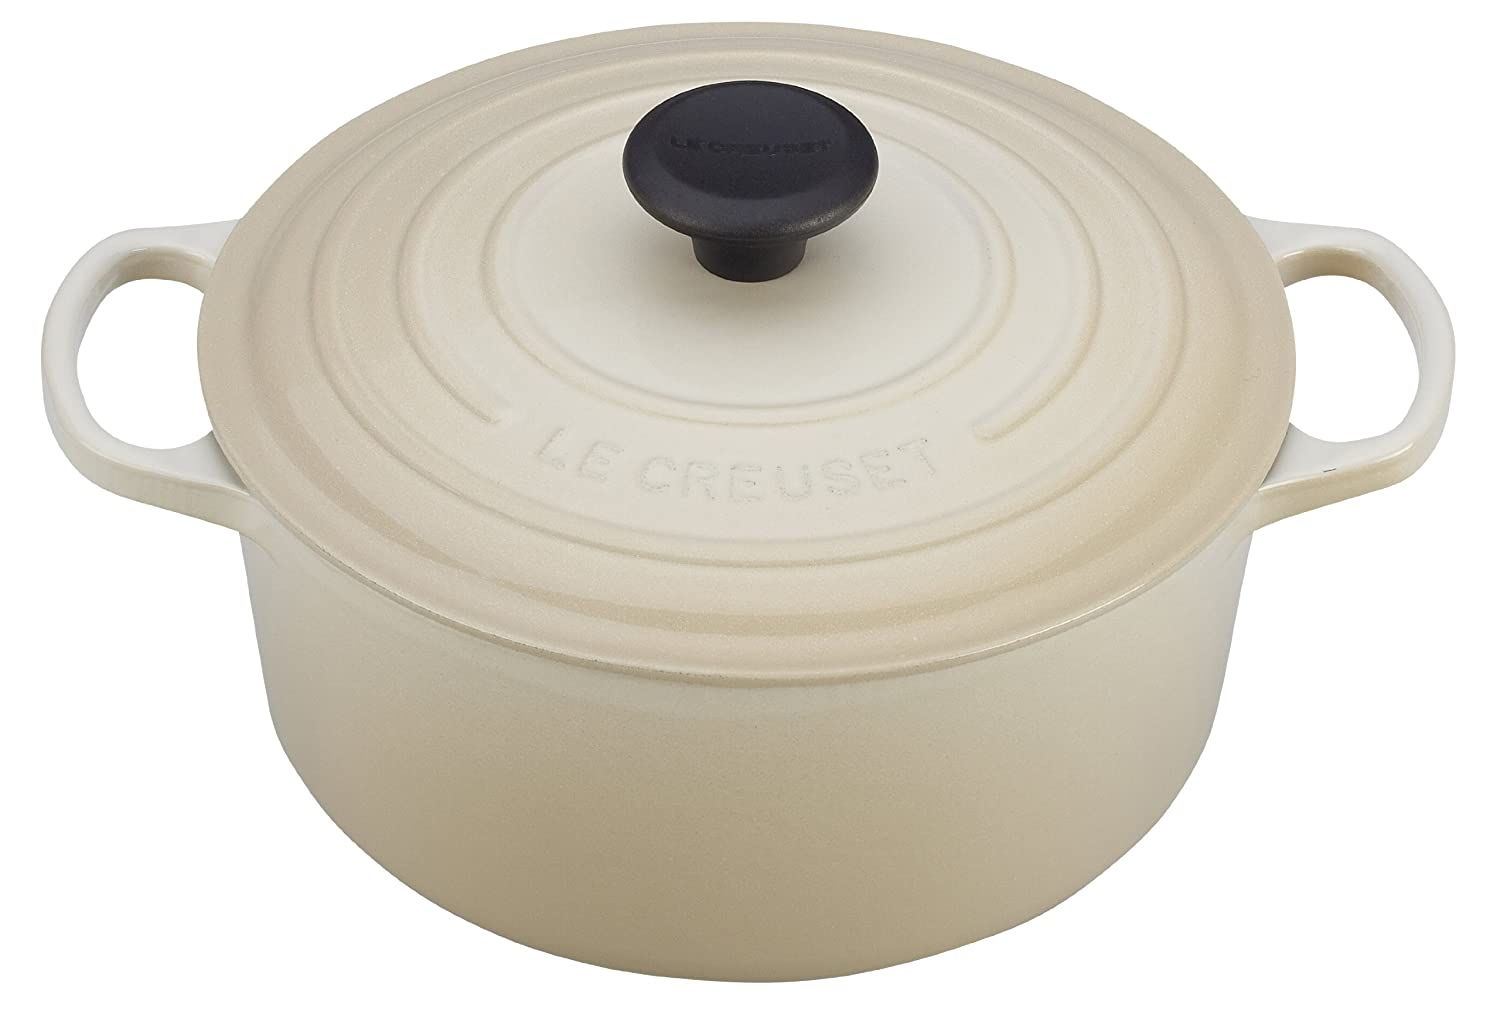 Amazon.com: Le Creuset Signature Enameled Cast-Iron 4-1/2-Quart ...